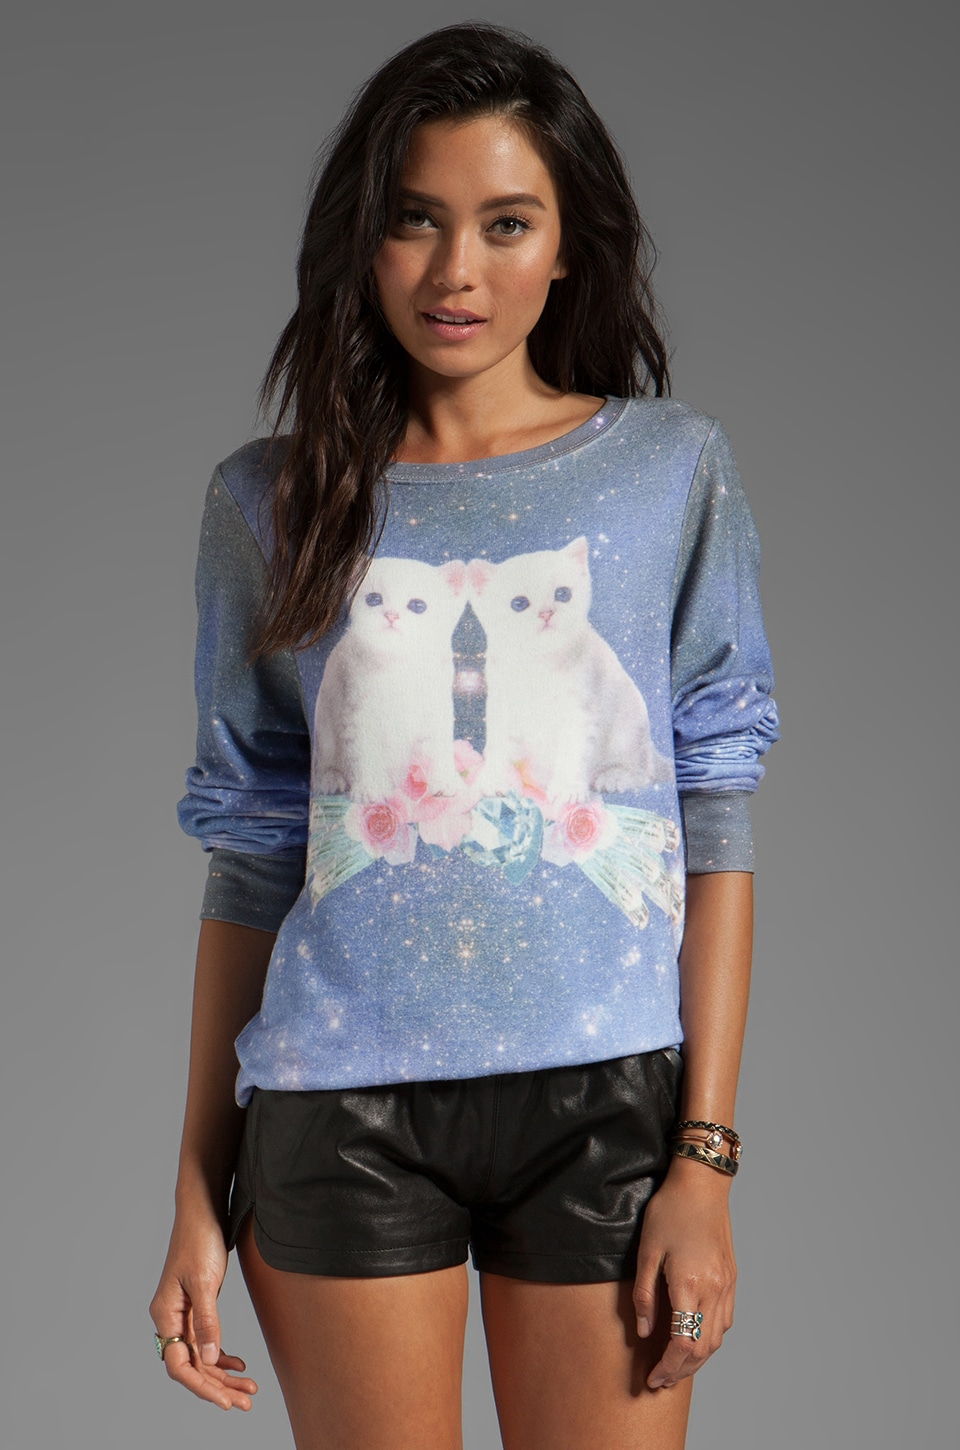 Wildfox Couture Fortunes Fool Space Kitten Baggy Beach Jumper in Multi